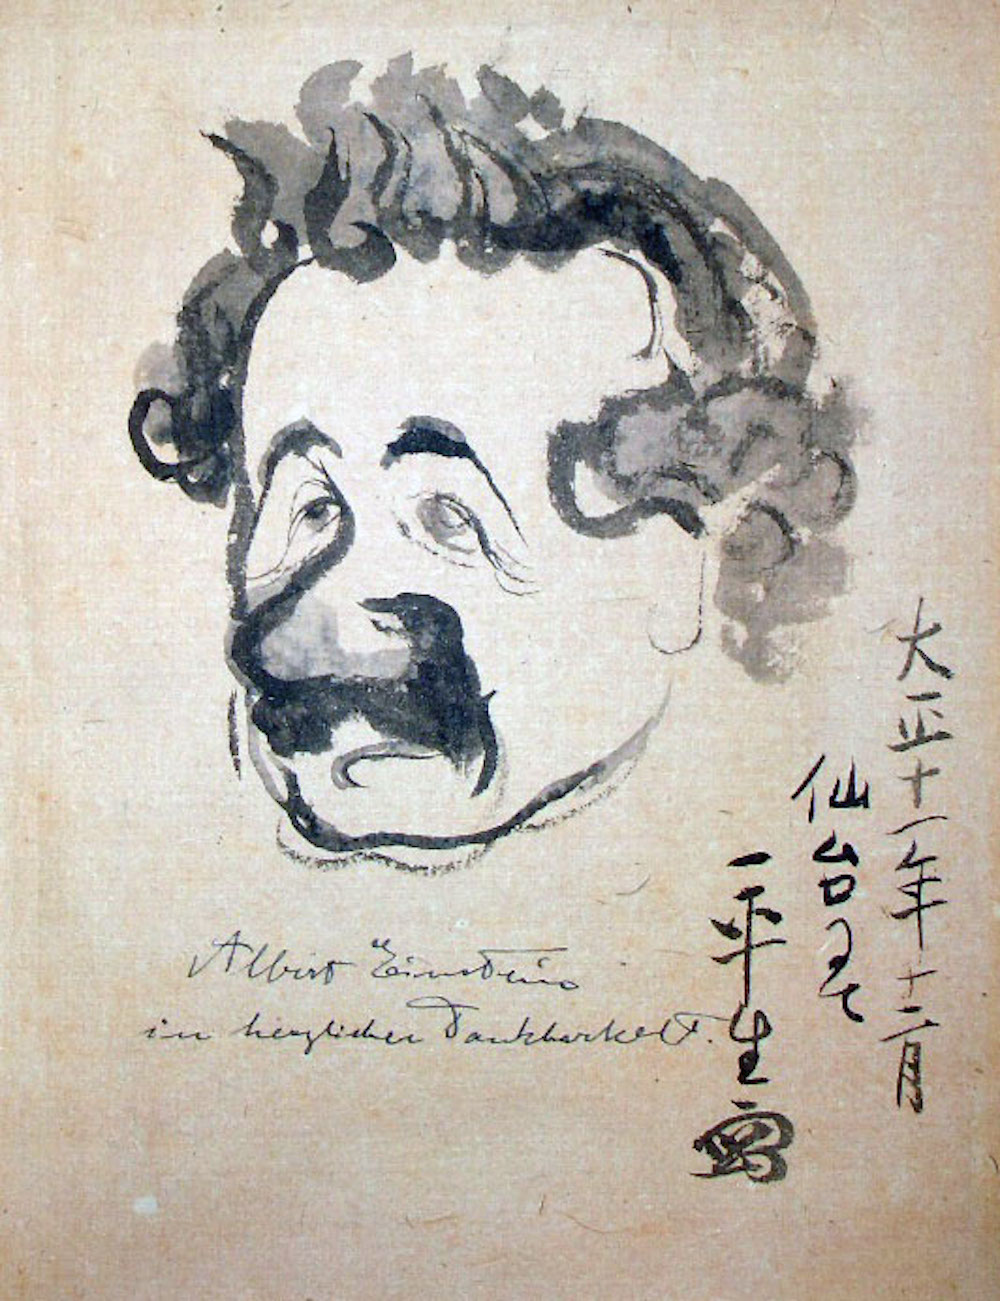 A portrait of Einstein by the cartoonist Okamoto Ippei (1886-1948), done in December of 1922 in Sendai, Miyagi Prefecture, Japan